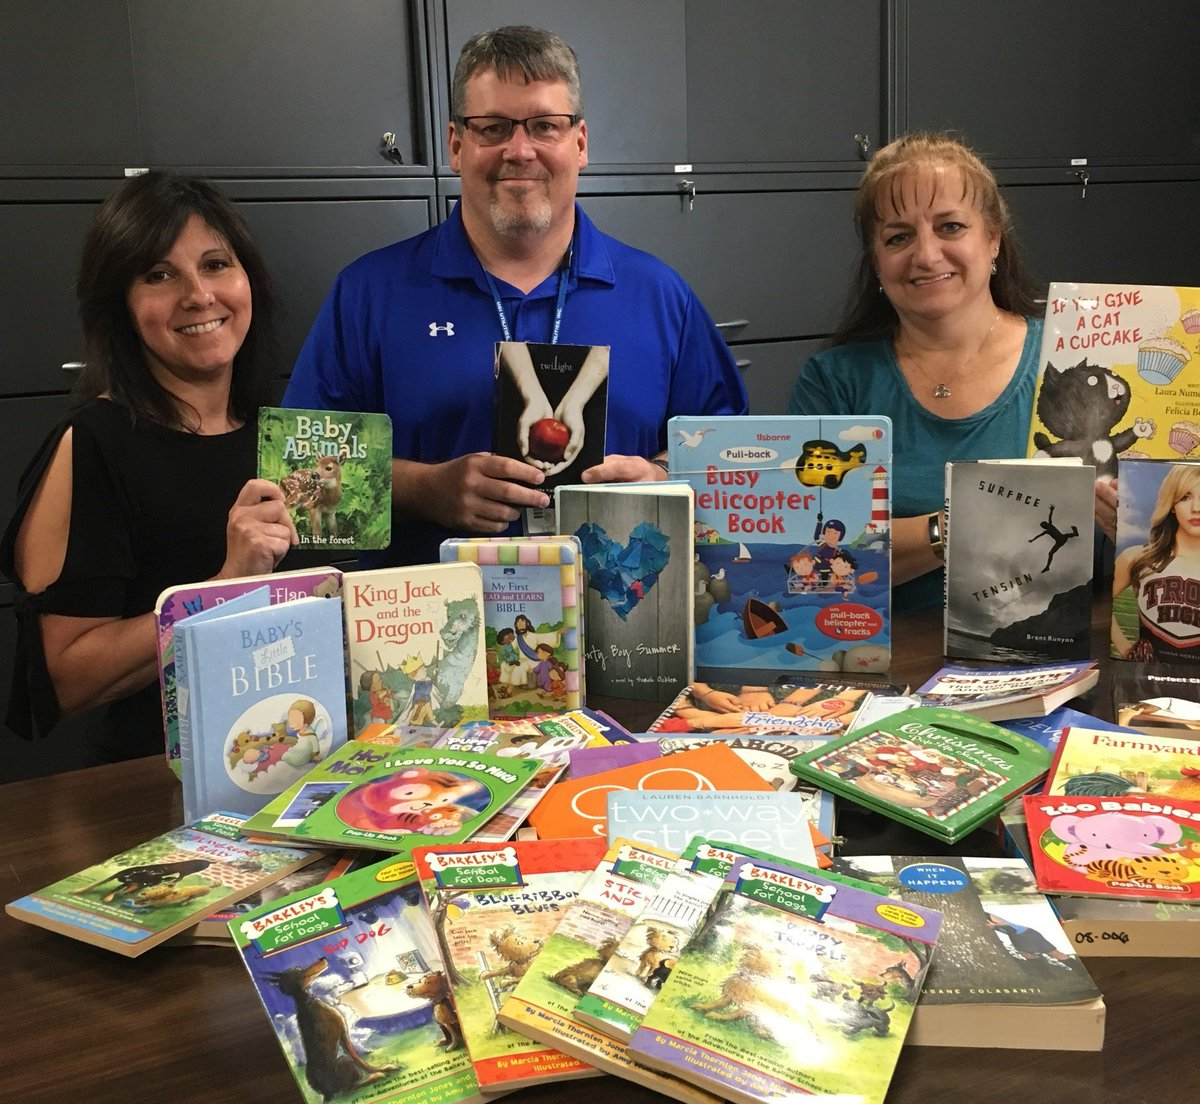 test Twitter Media - UGI employees from our Williamsport office did their part to combat #summerslide by collecting new and gently used children's books for @LyCoUnitedWay. The books were distributed to local summer reading programs. https://t.co/hA5Weda0ez